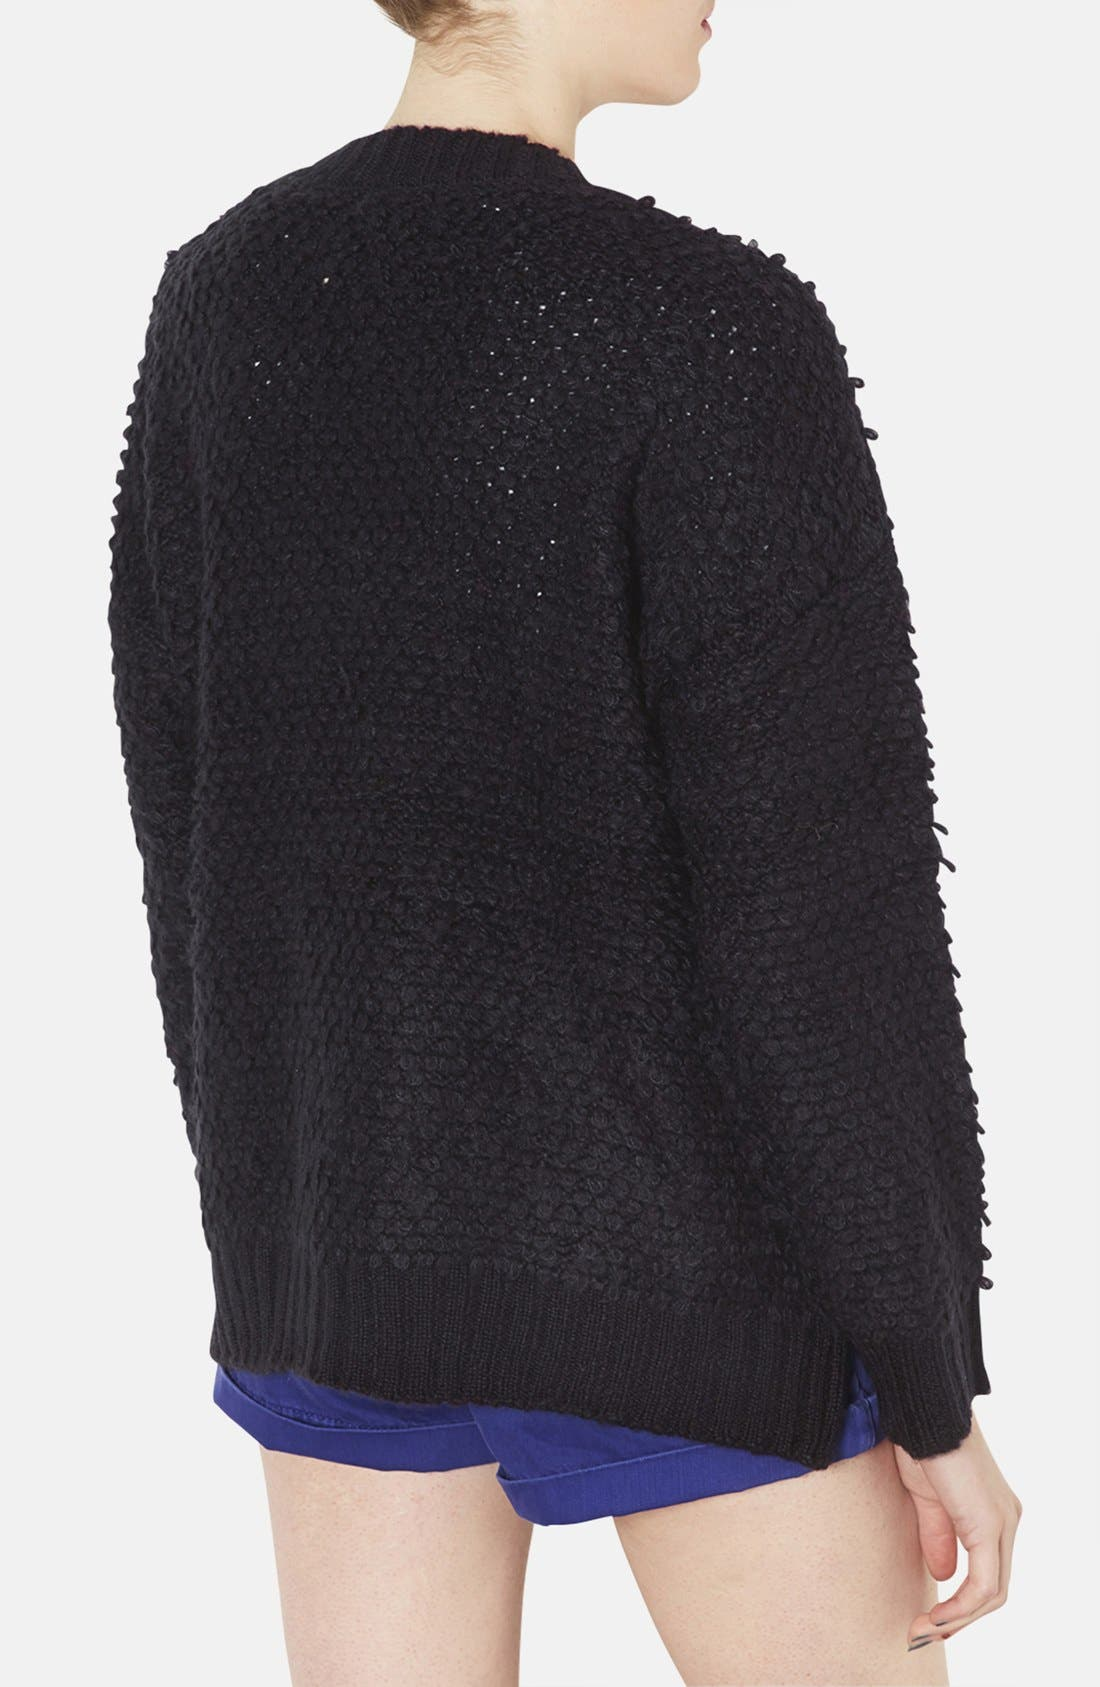 Alternate Image 2  - Topshop 'Hold Loopy' Textured Knit Cardigan